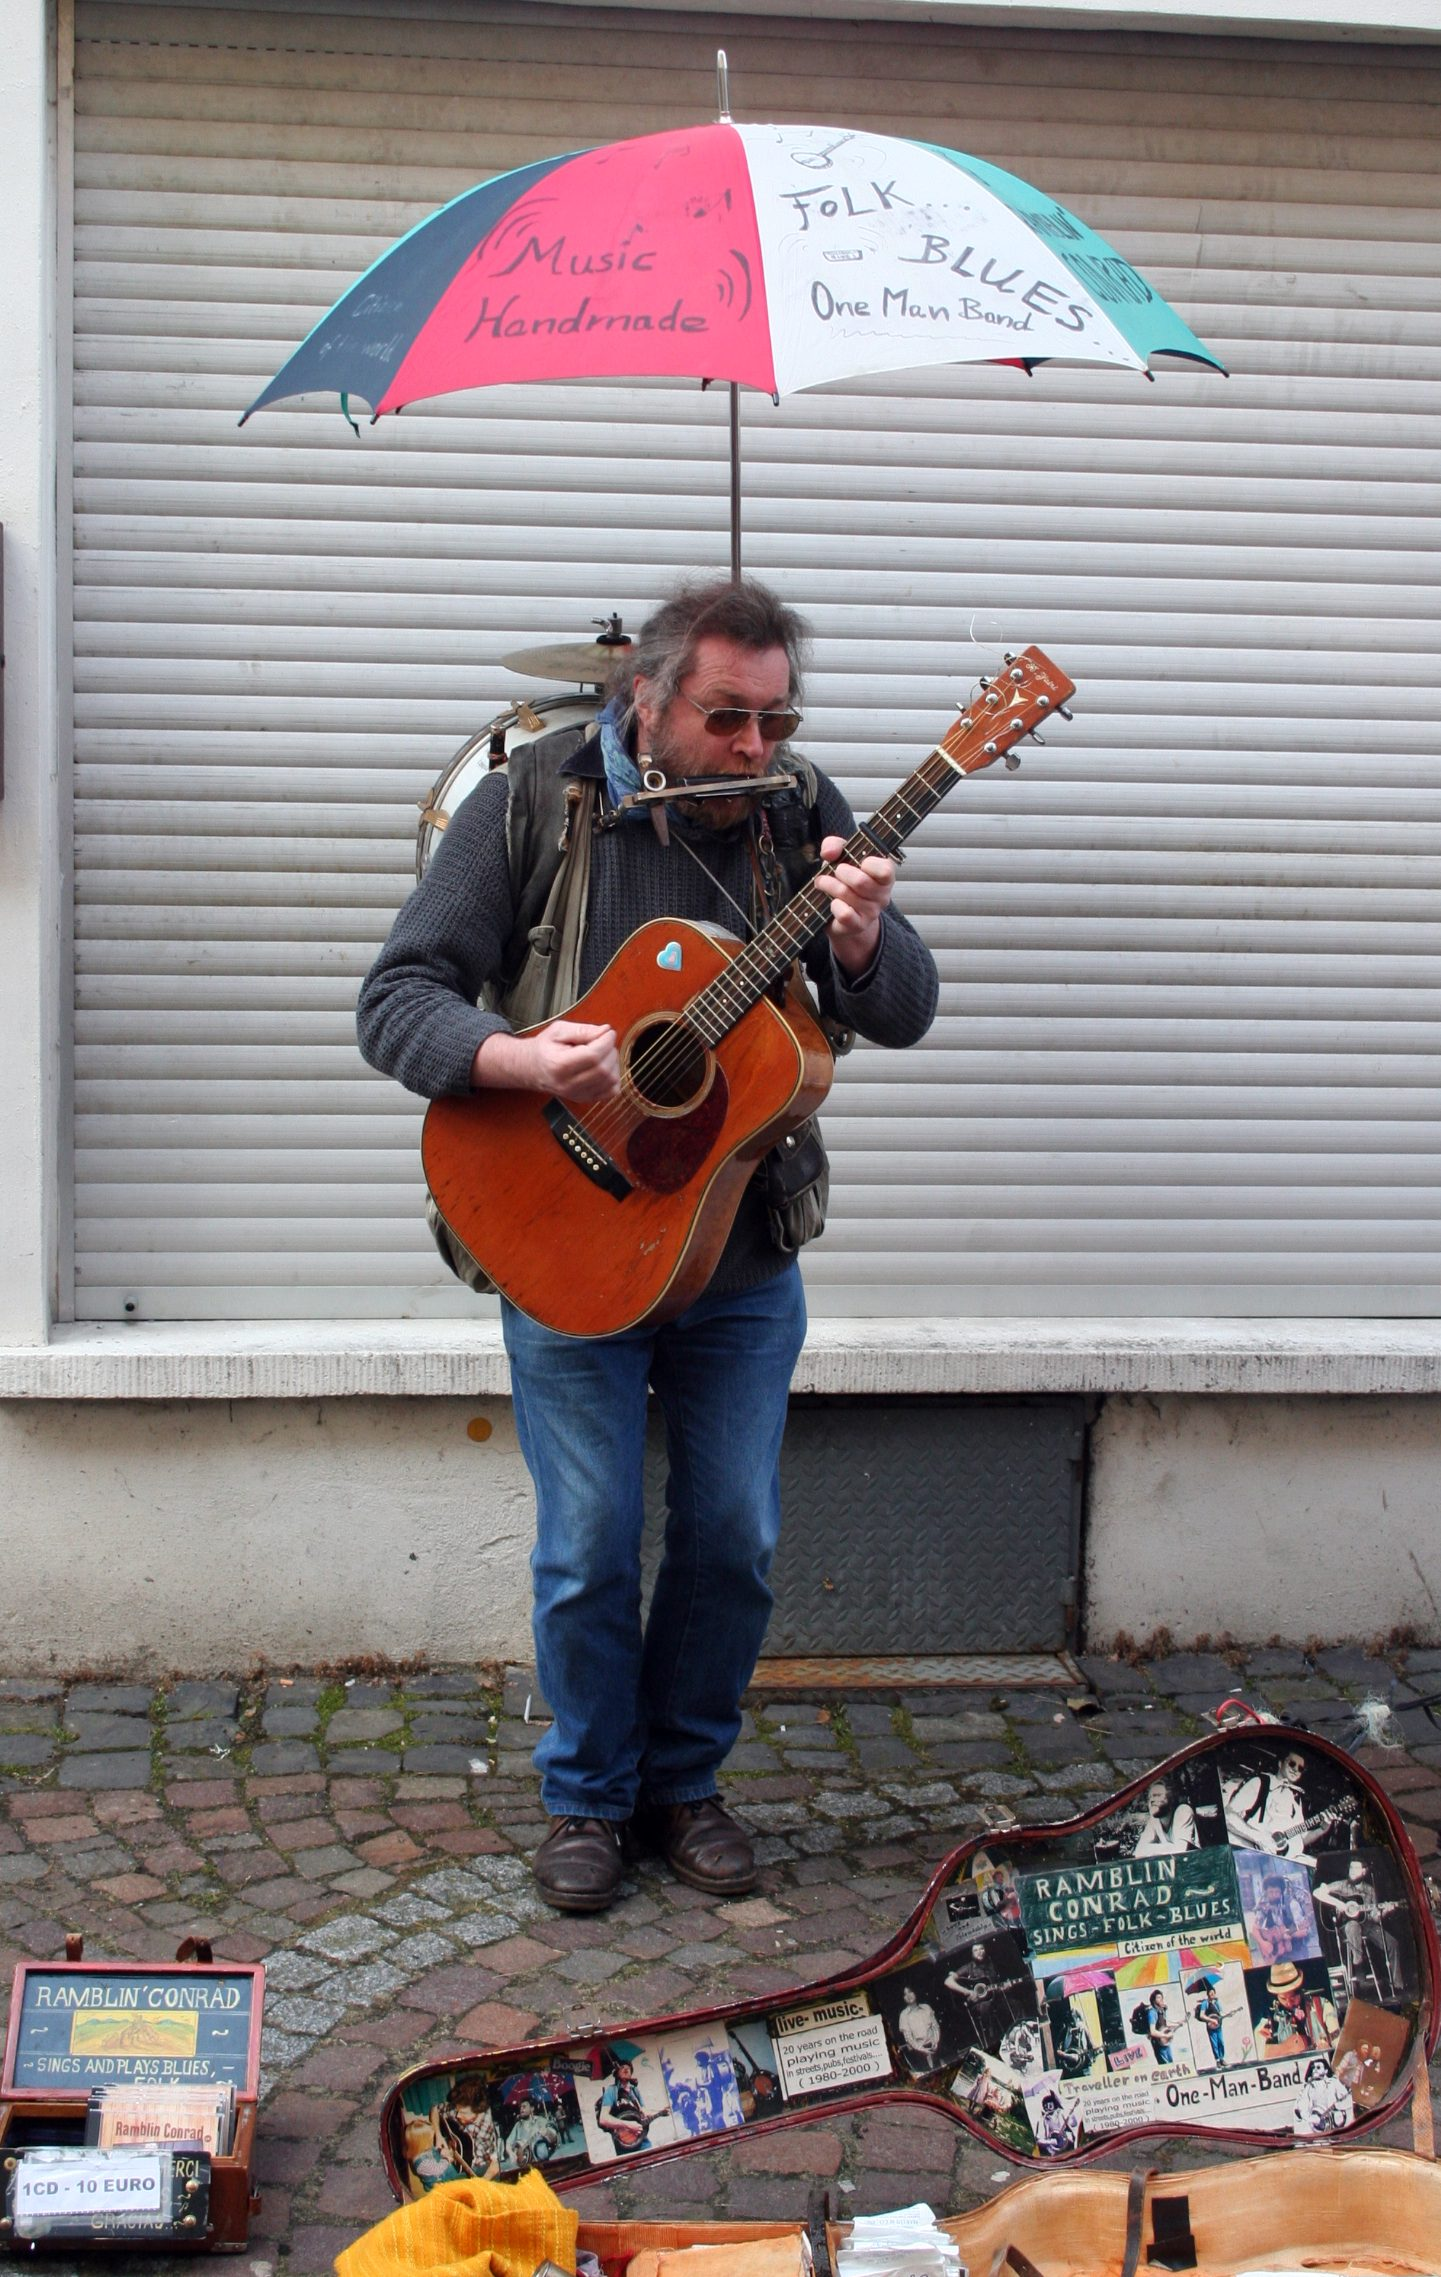 http://upload.wikimedia.org/wikipedia/commons/a/a7/One_man_band.jpg